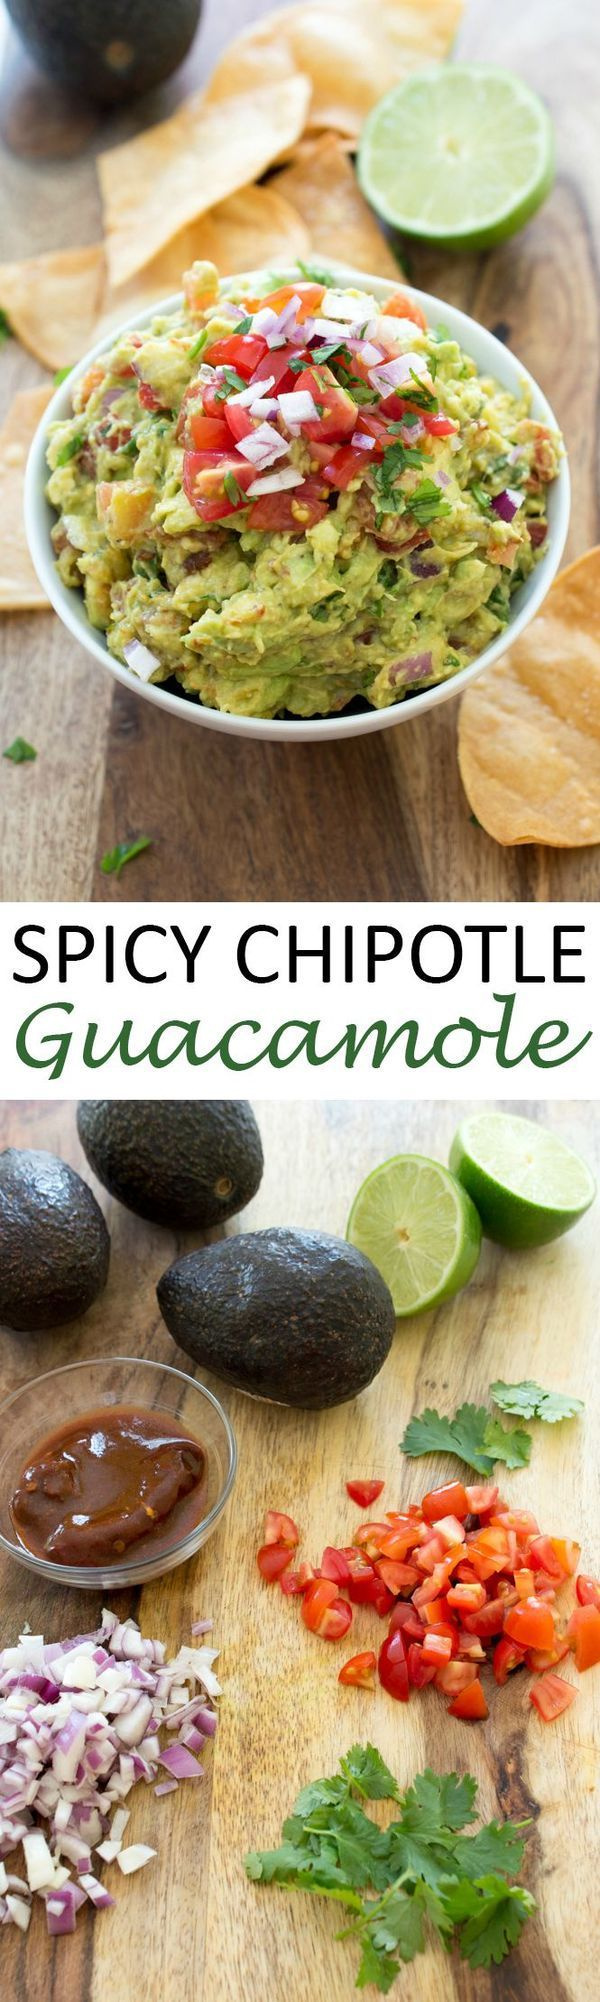 Spicy Chipotle Guacamole. Smokey, spicy and loaded with flavor. Perfect as a snack or appetizer! Just in time for Cinco De Mayo! | http://chefsavvy.com #recipe #guacamole #spicy #chipotle